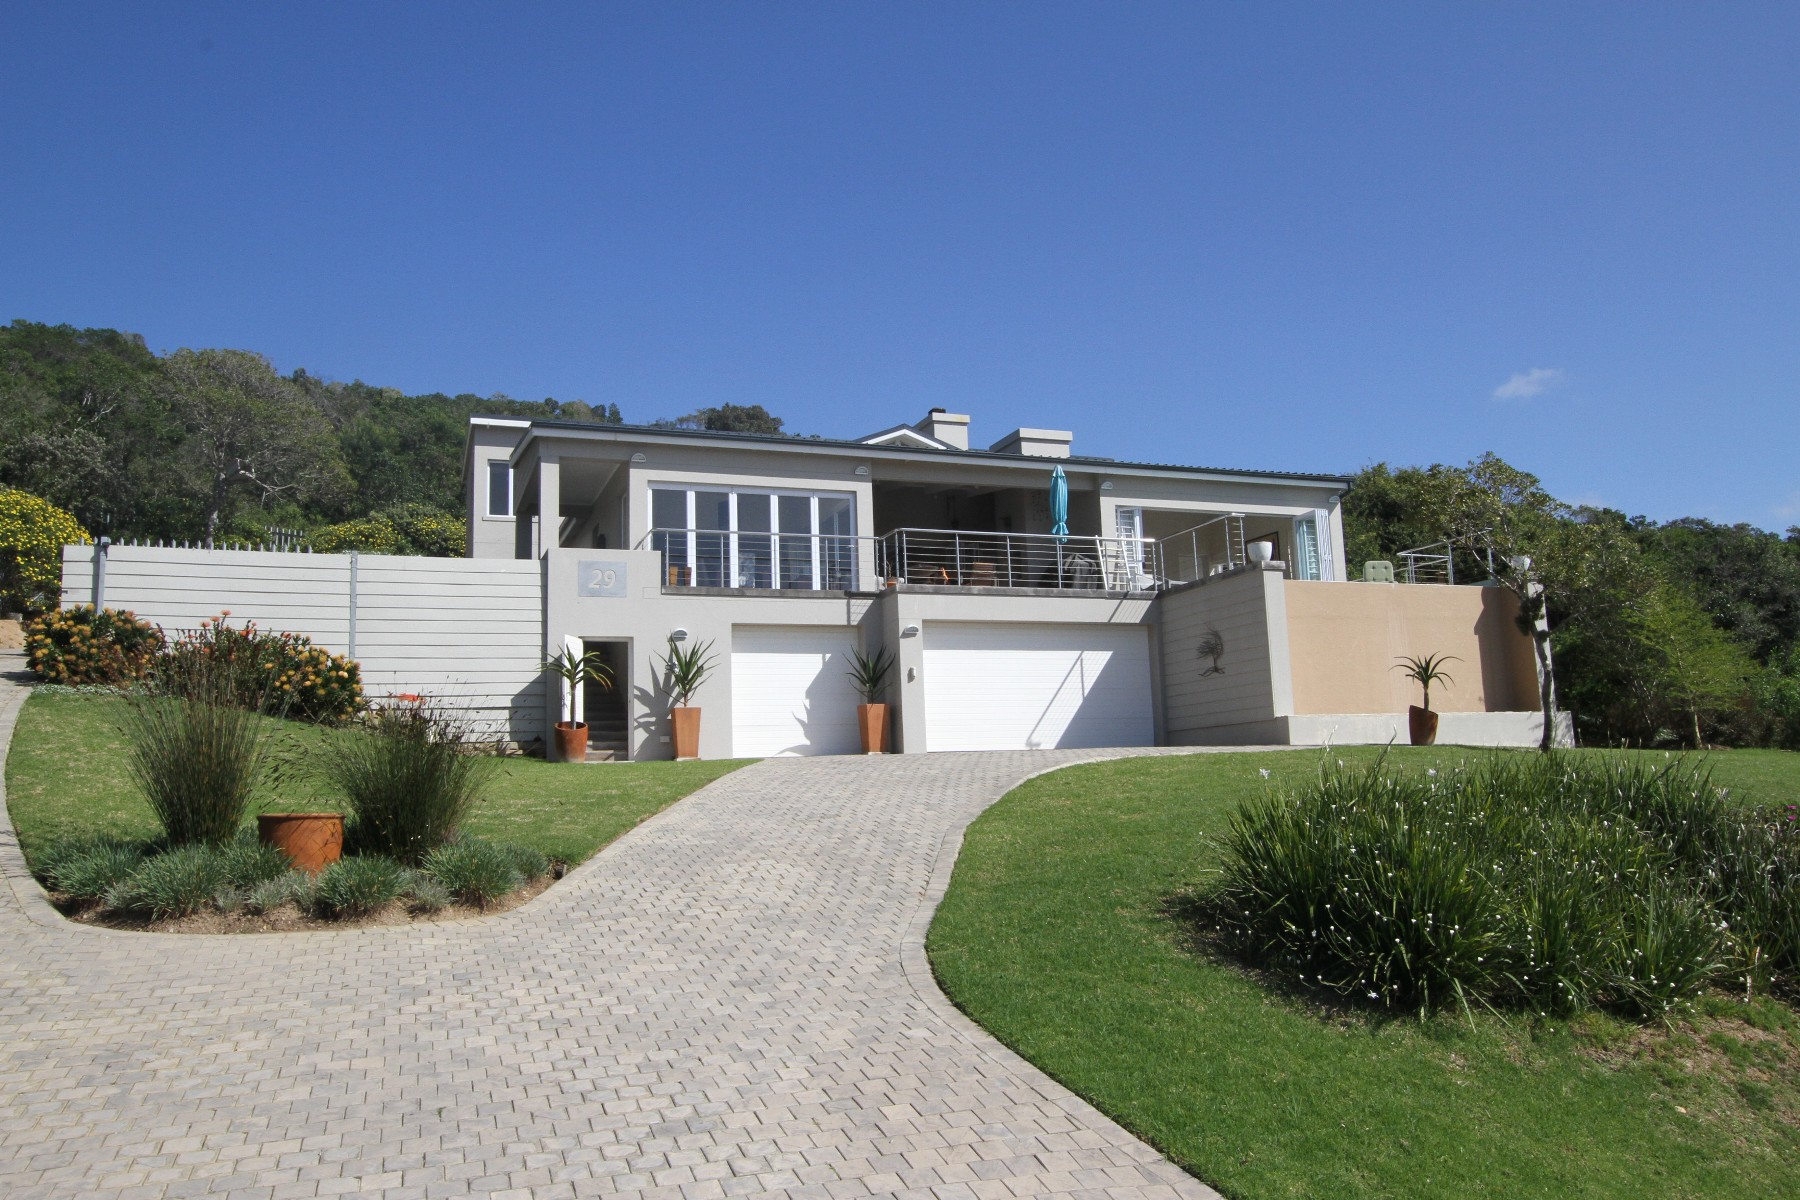 Maison unifamiliale pour l Vente à Good Views in Whale Rock Plettenberg Bay, Cap-Occidental, 6600 Afrique Du Sud